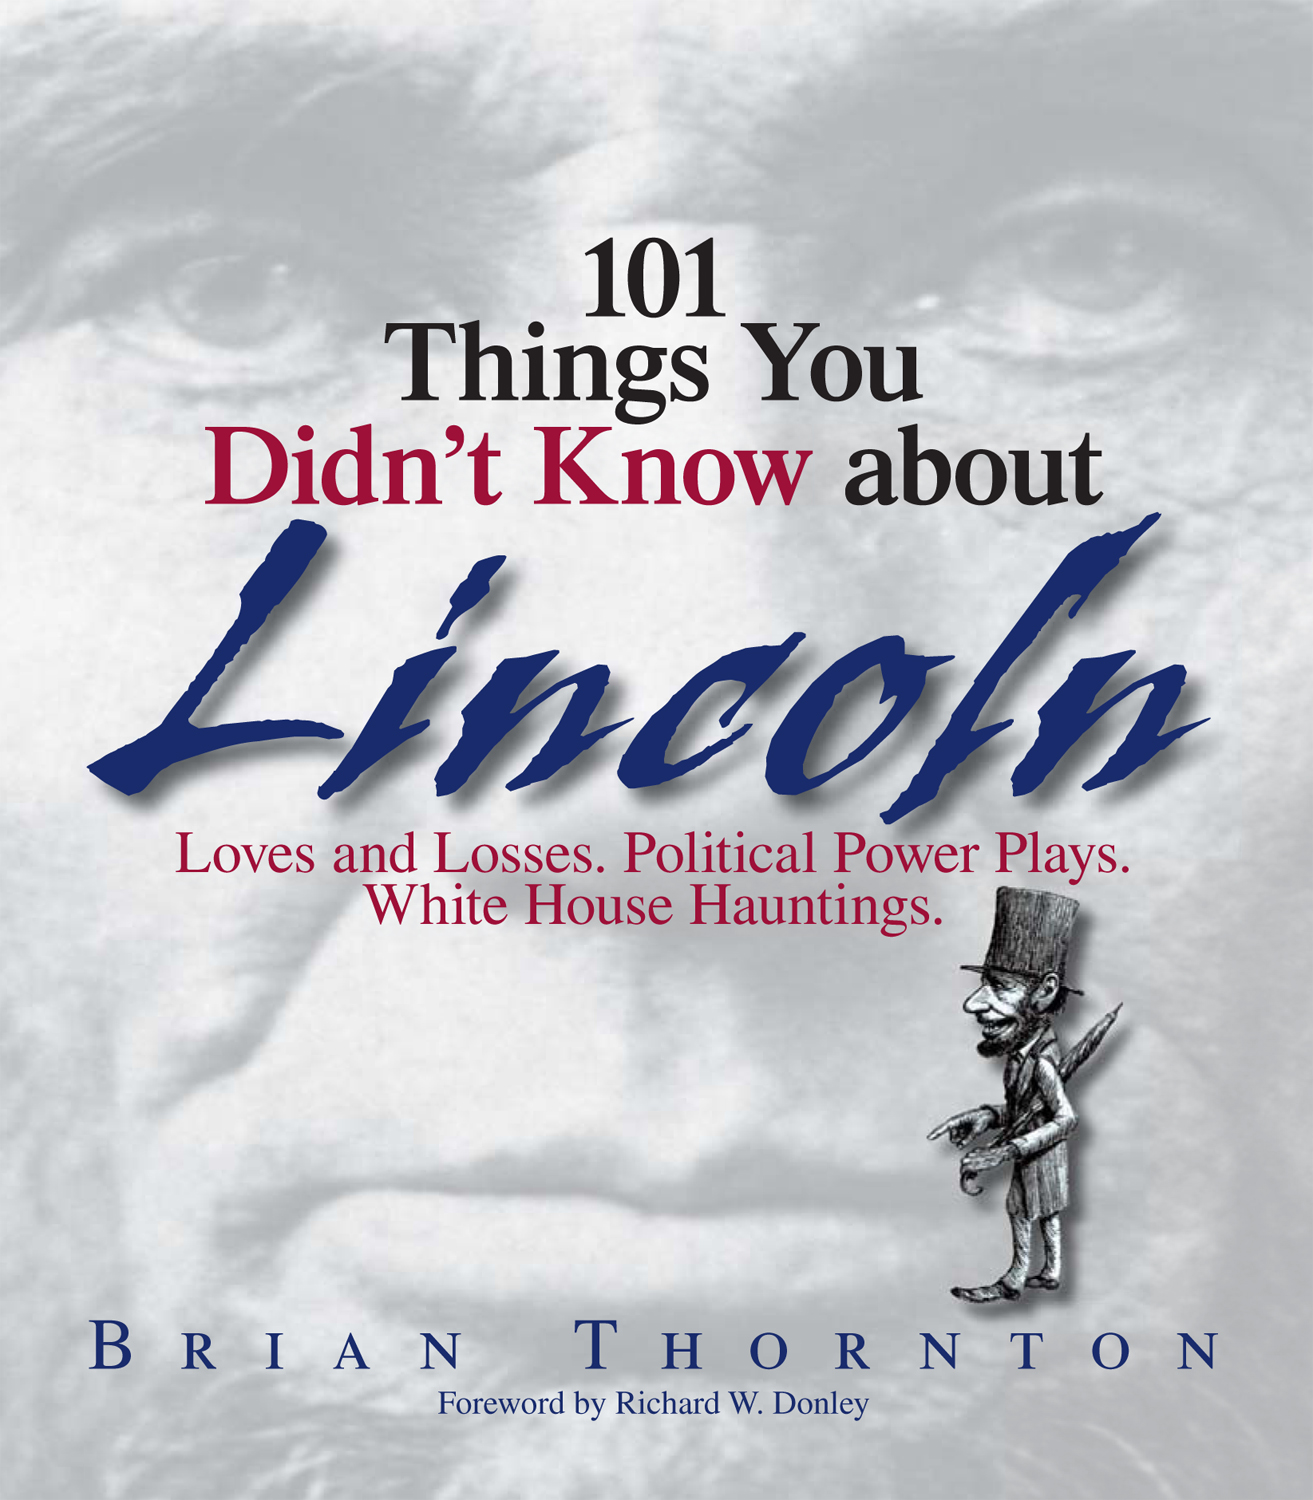 101 Things You Didn't Know About Lincoln Loves And Losses! Political Power Plays! White House Hauntings!